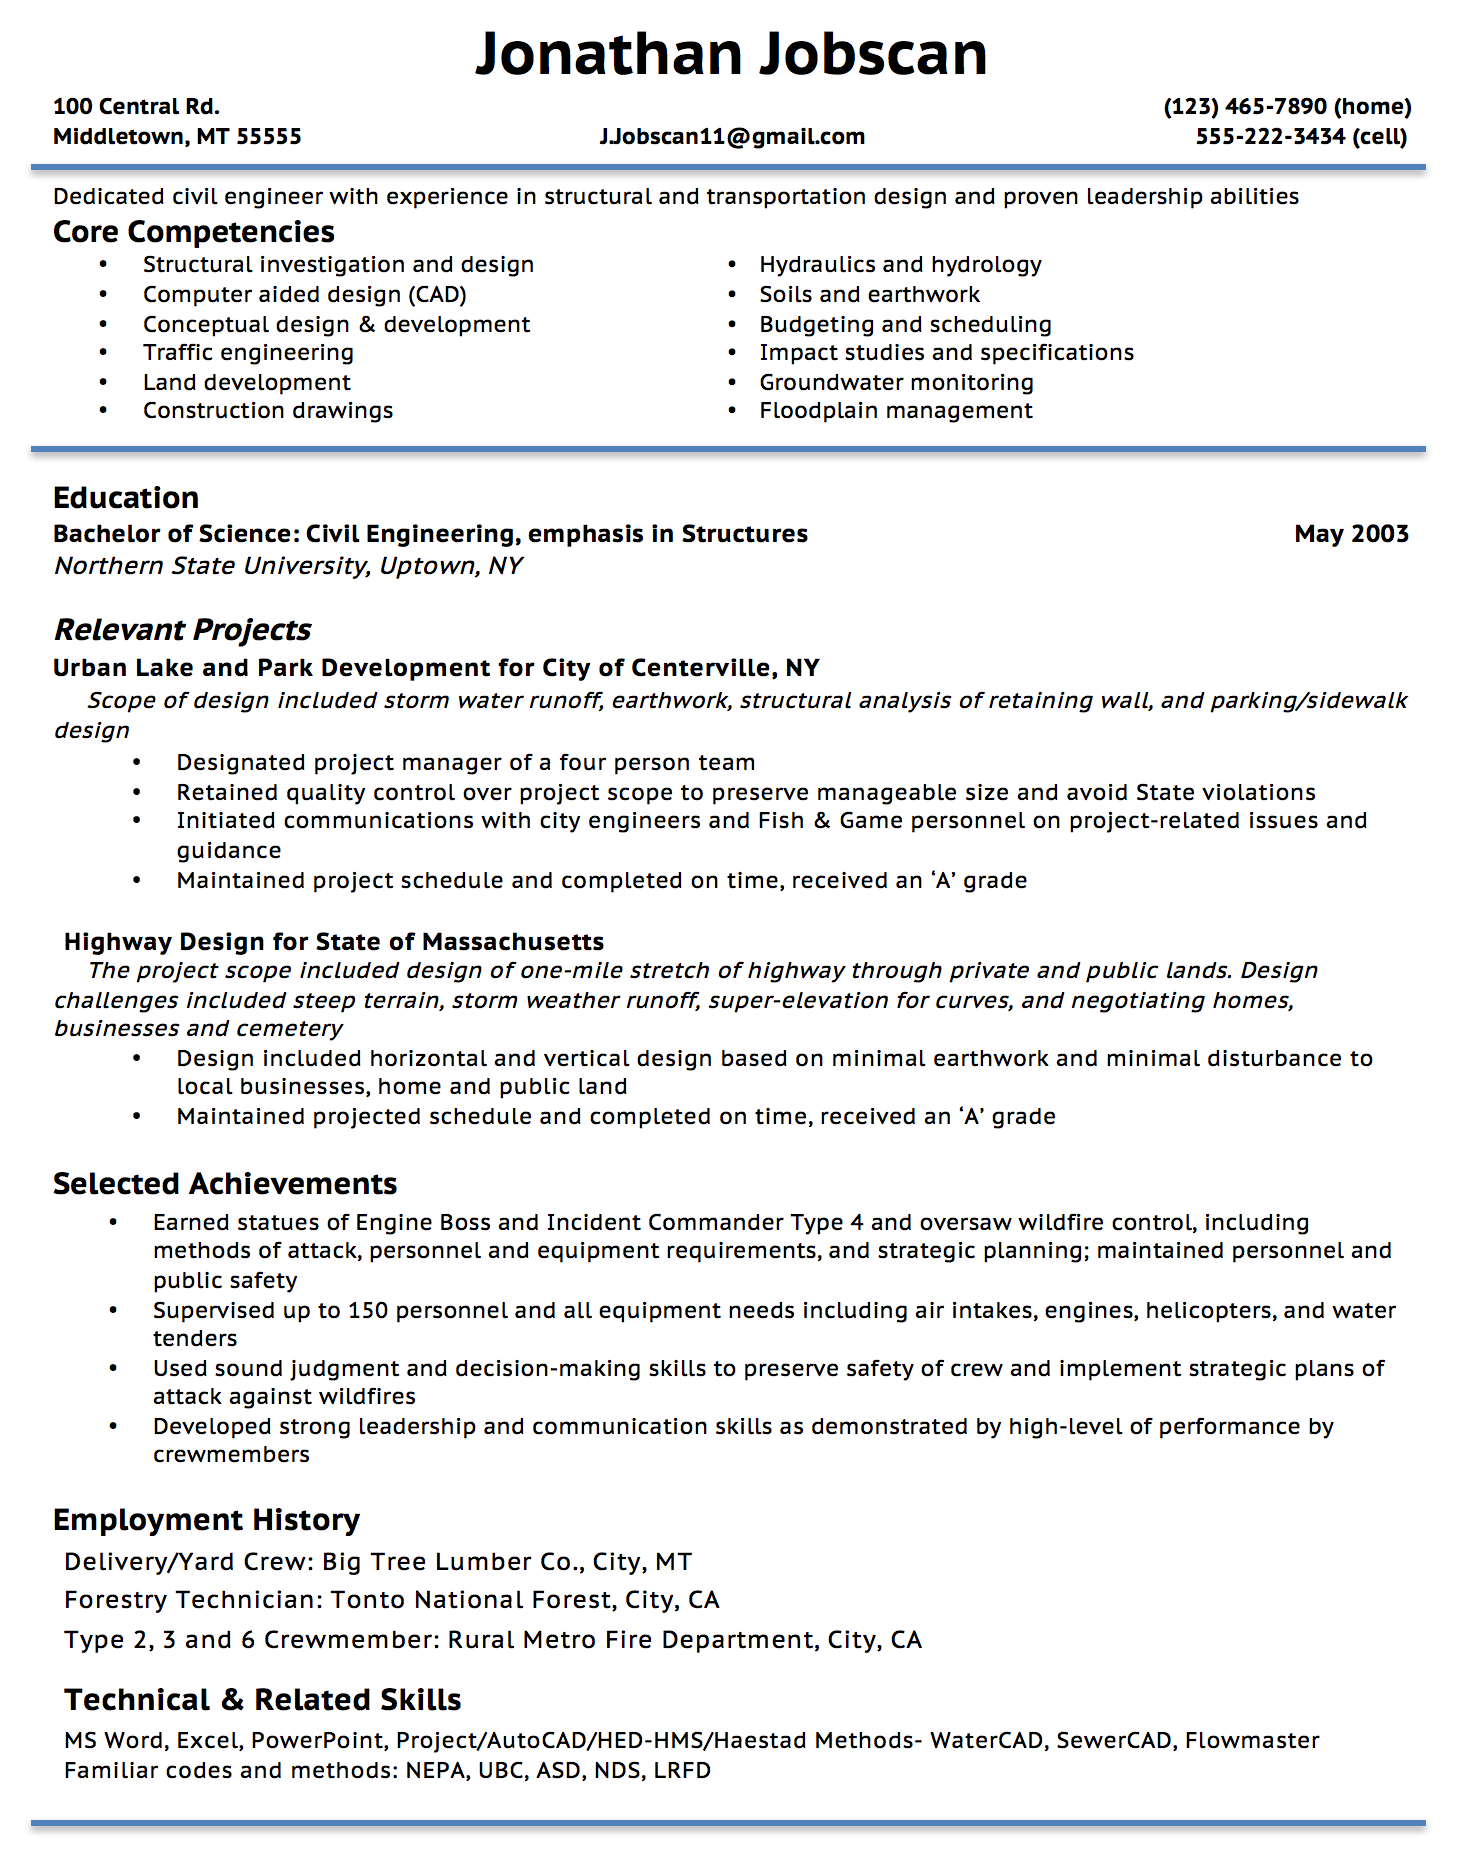 Opposenewapstandardsus  Prepossessing Resume Writing Guide  Jobscan With Gorgeous Example Of A Functional Resume Format With Appealing Freshman College Student Resume Also Real Estate Resume Sample In Addition Resume Objective Examples Customer Service And Cosmetology Resume Templates As Well As My Resume Sucks Additionally How To Make A Resume For First Job From Jobscanco With Opposenewapstandardsus  Gorgeous Resume Writing Guide  Jobscan With Appealing Example Of A Functional Resume Format And Prepossessing Freshman College Student Resume Also Real Estate Resume Sample In Addition Resume Objective Examples Customer Service From Jobscanco